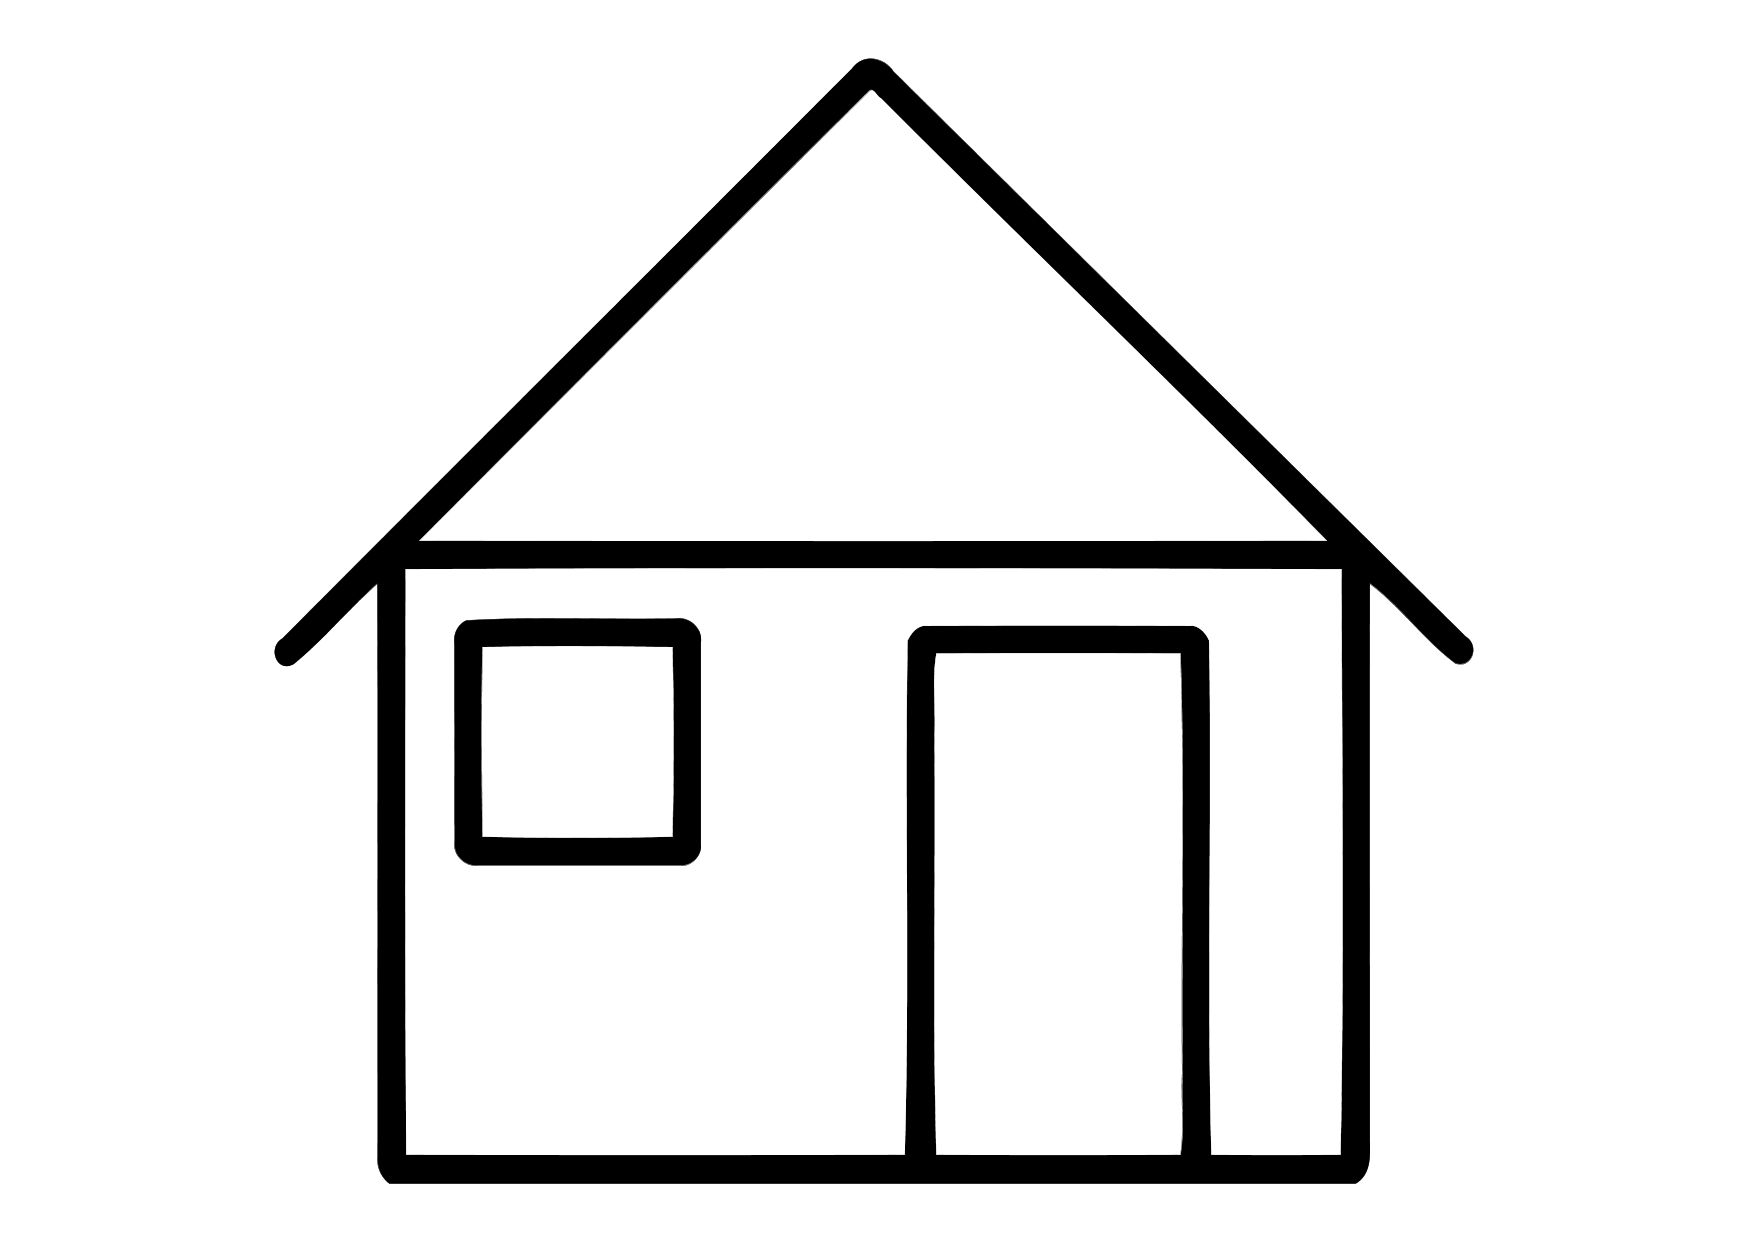 house coloring sheet house coloring pages to download and print for free house coloring sheet